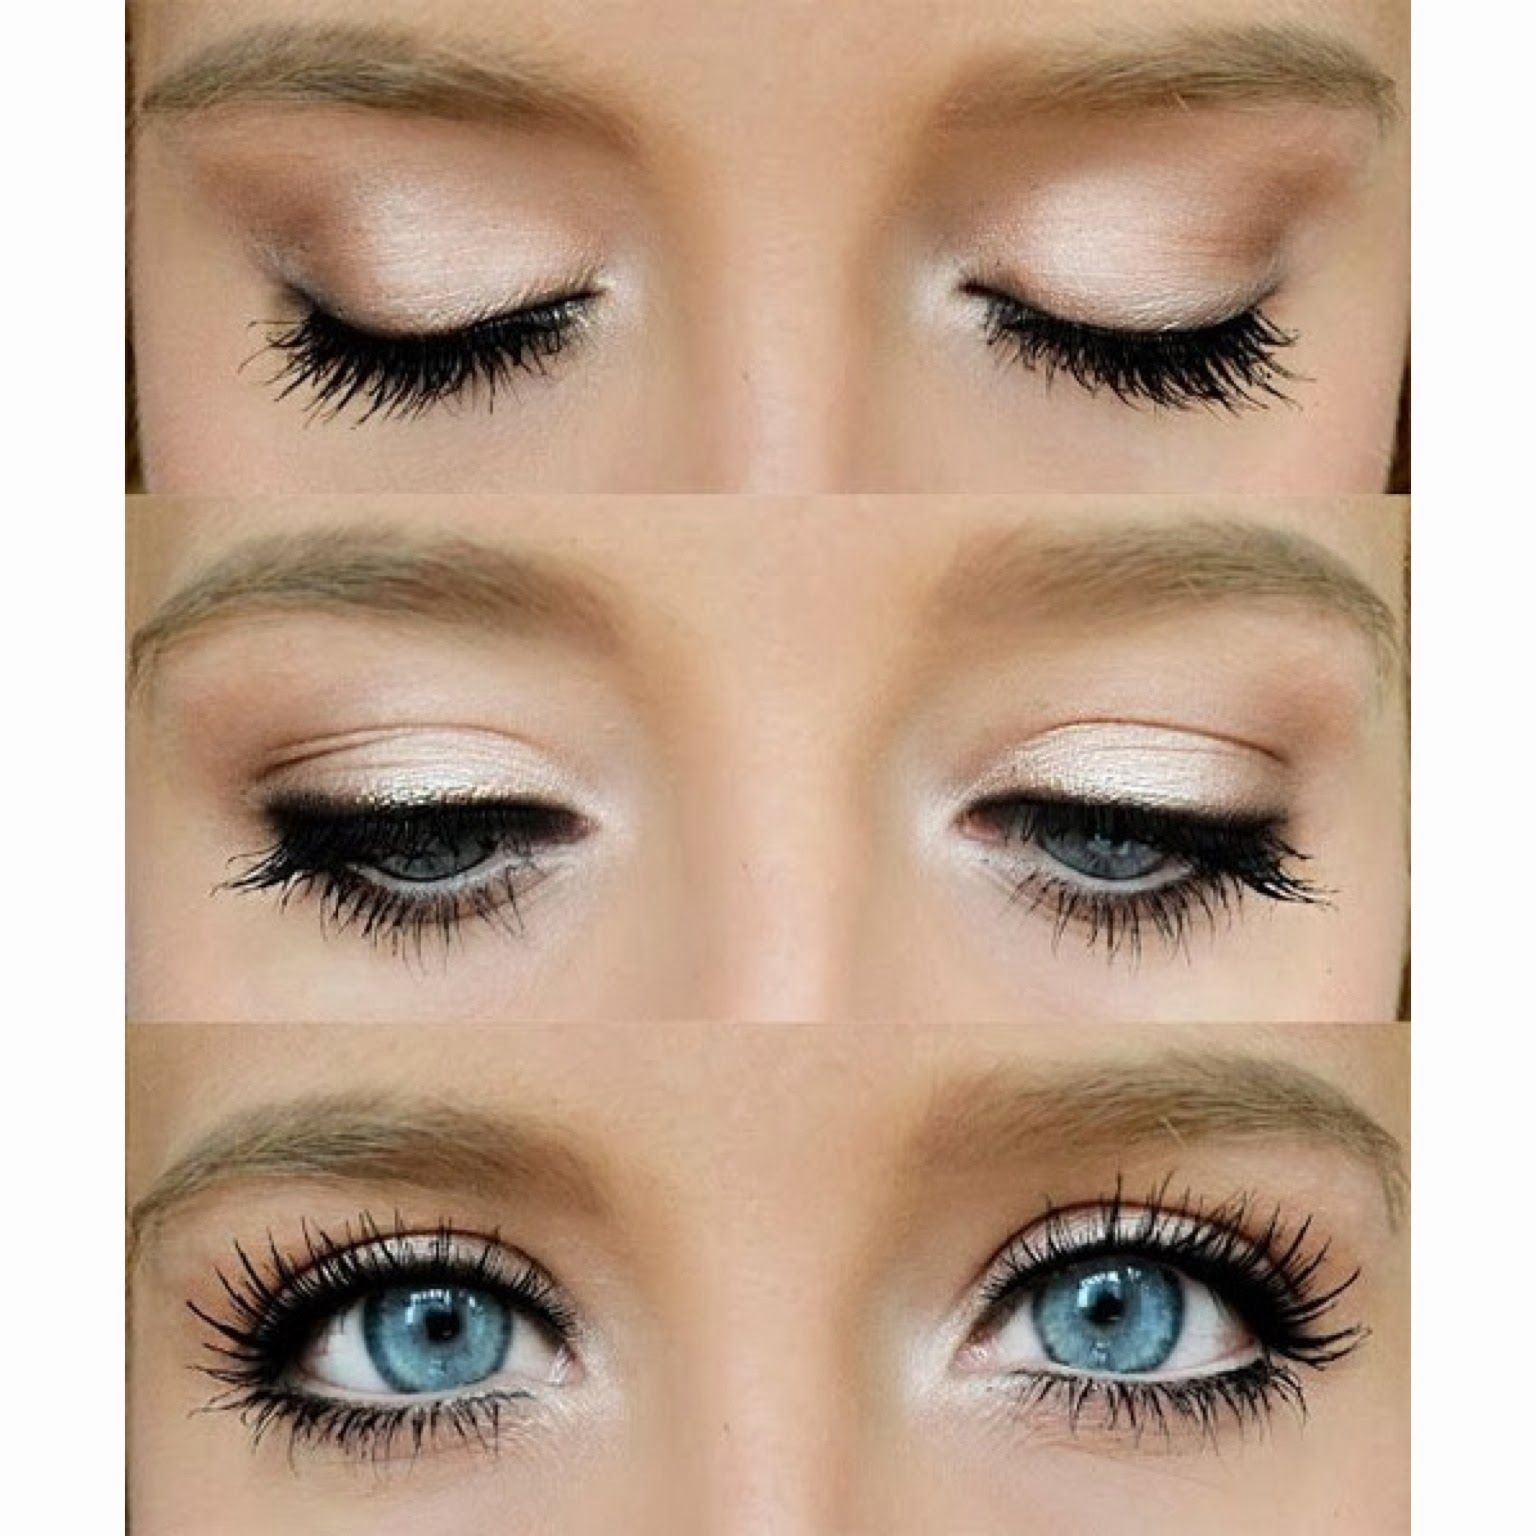 make your blue eyes pop with this natural eye. a little eye